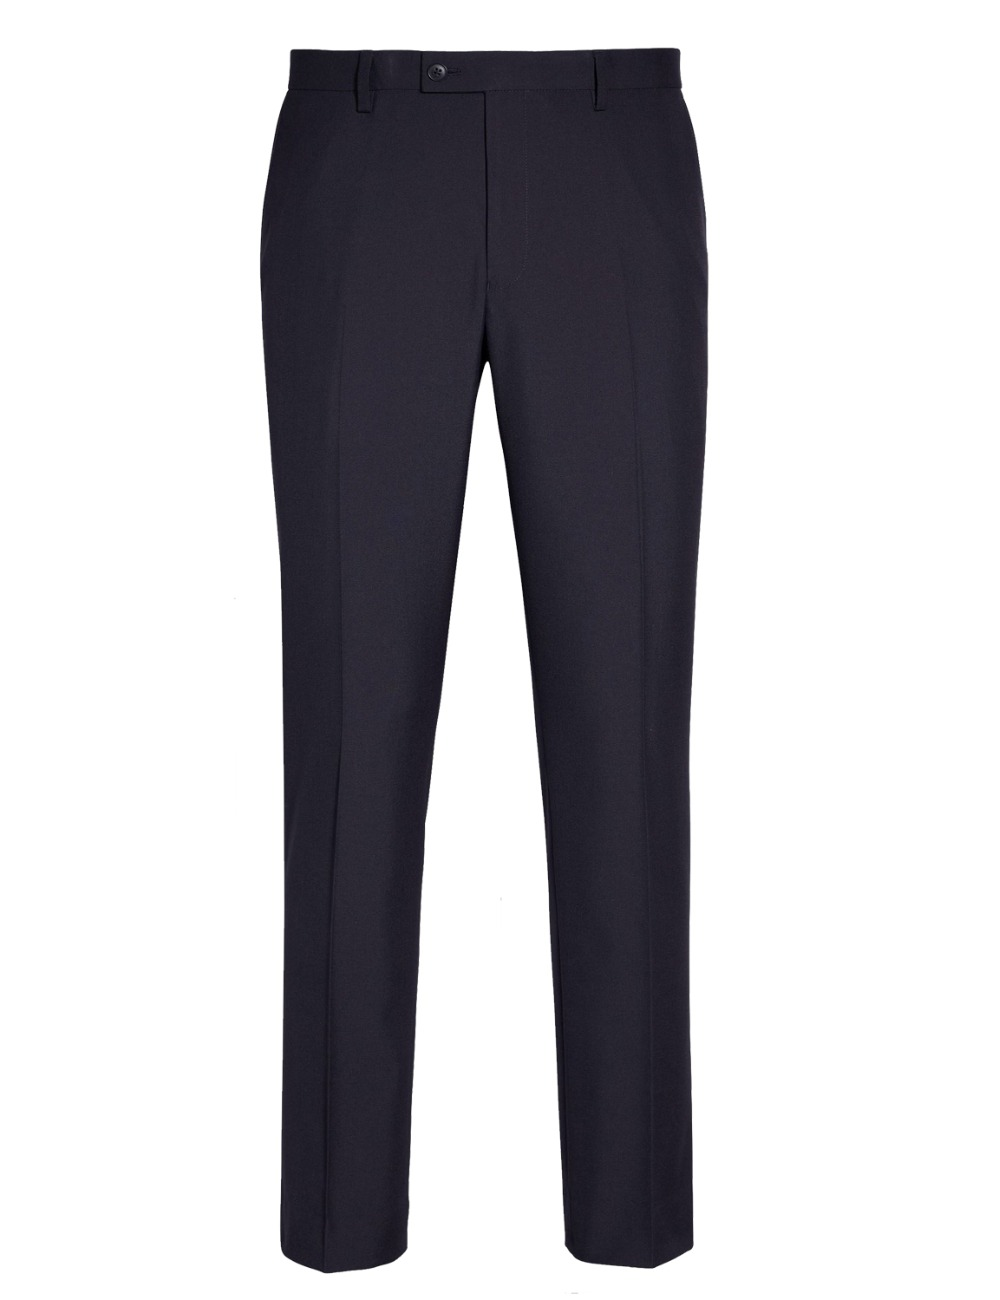 Men's Skinny Formal Business Trousers Black Suit Pants With Commercial Western-Style And High-Quality Goods Male Suits Pants